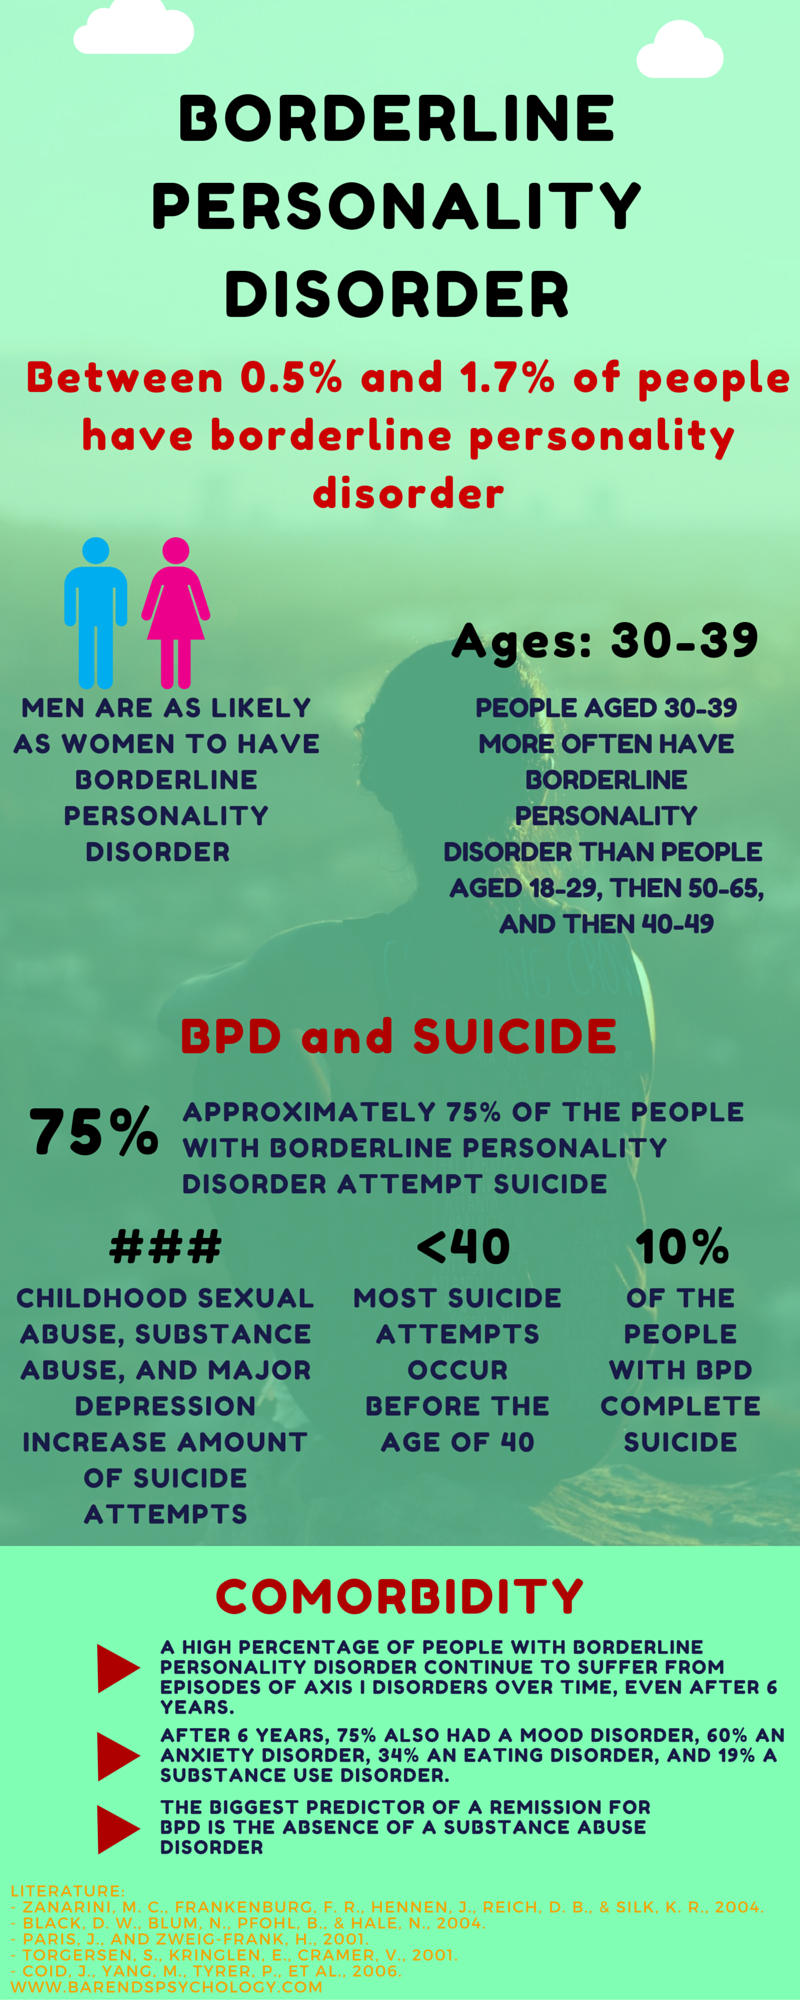 Borderline Personality Disorder Treatment What Are